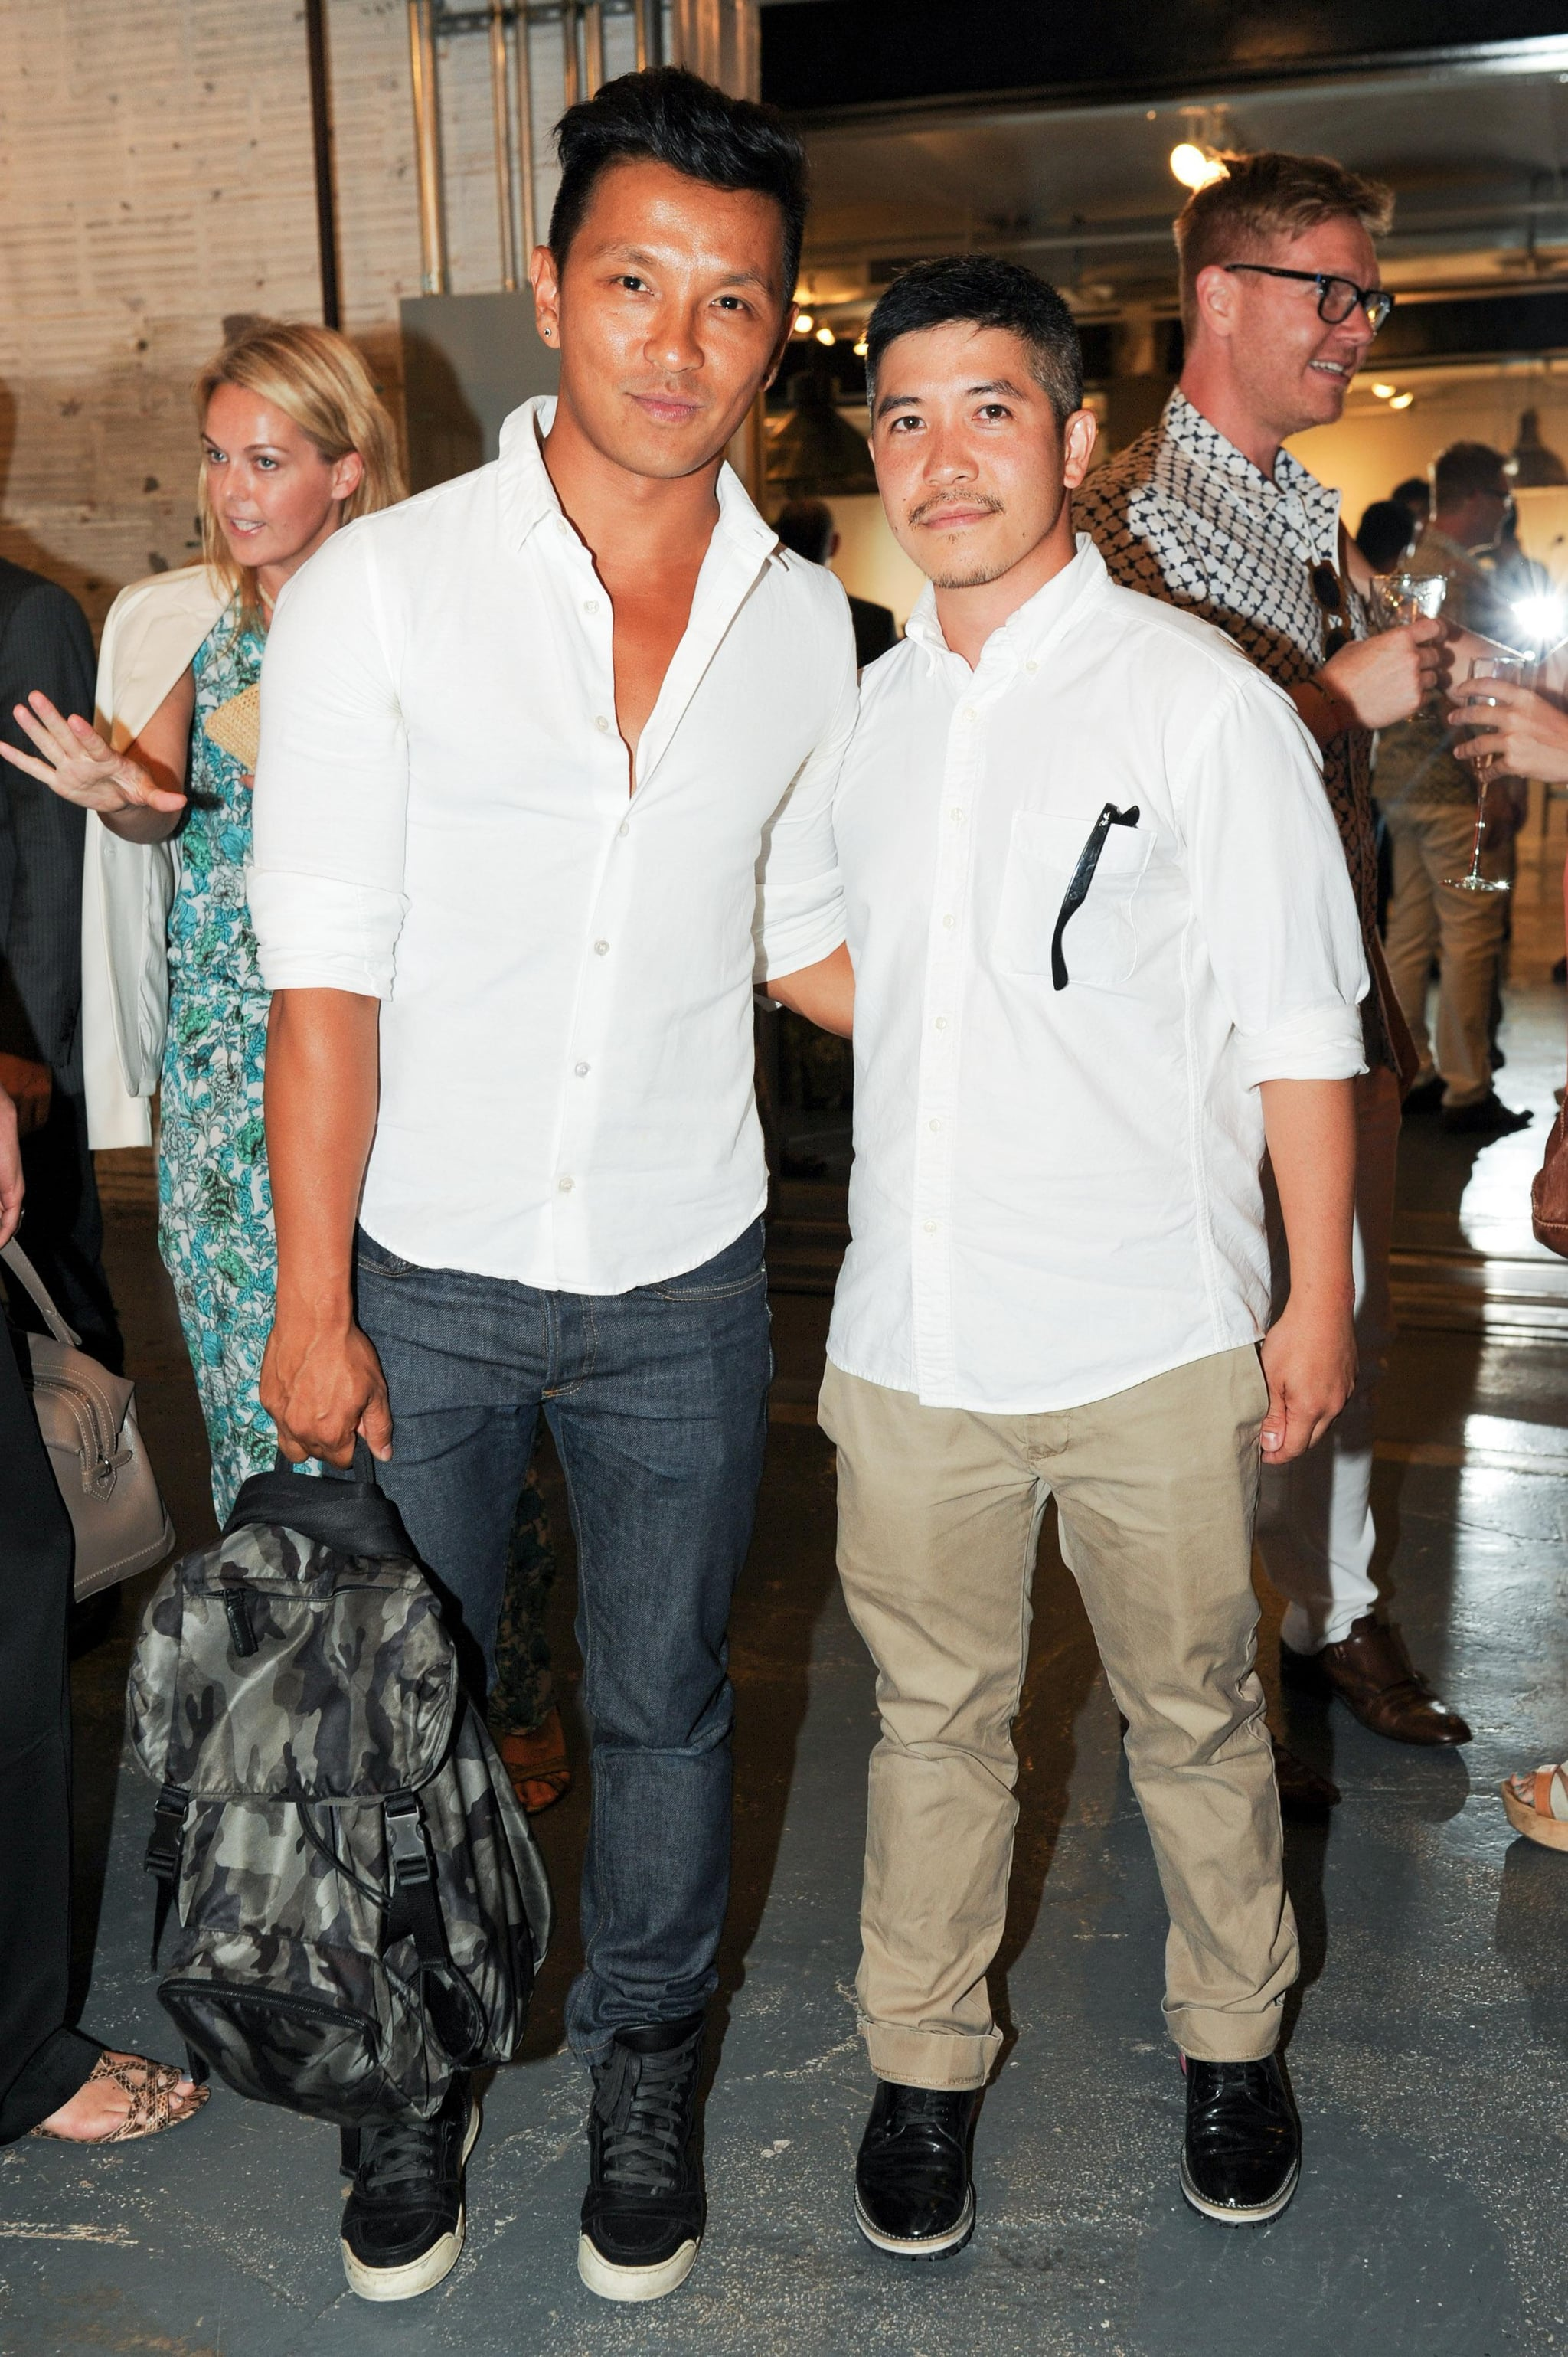 Fellow designers Prabal Gurung and Thakoon Panichgul were thinking alike when they paired white button-downs, black sneakers, and relaxed pants for last night's CFDA event.